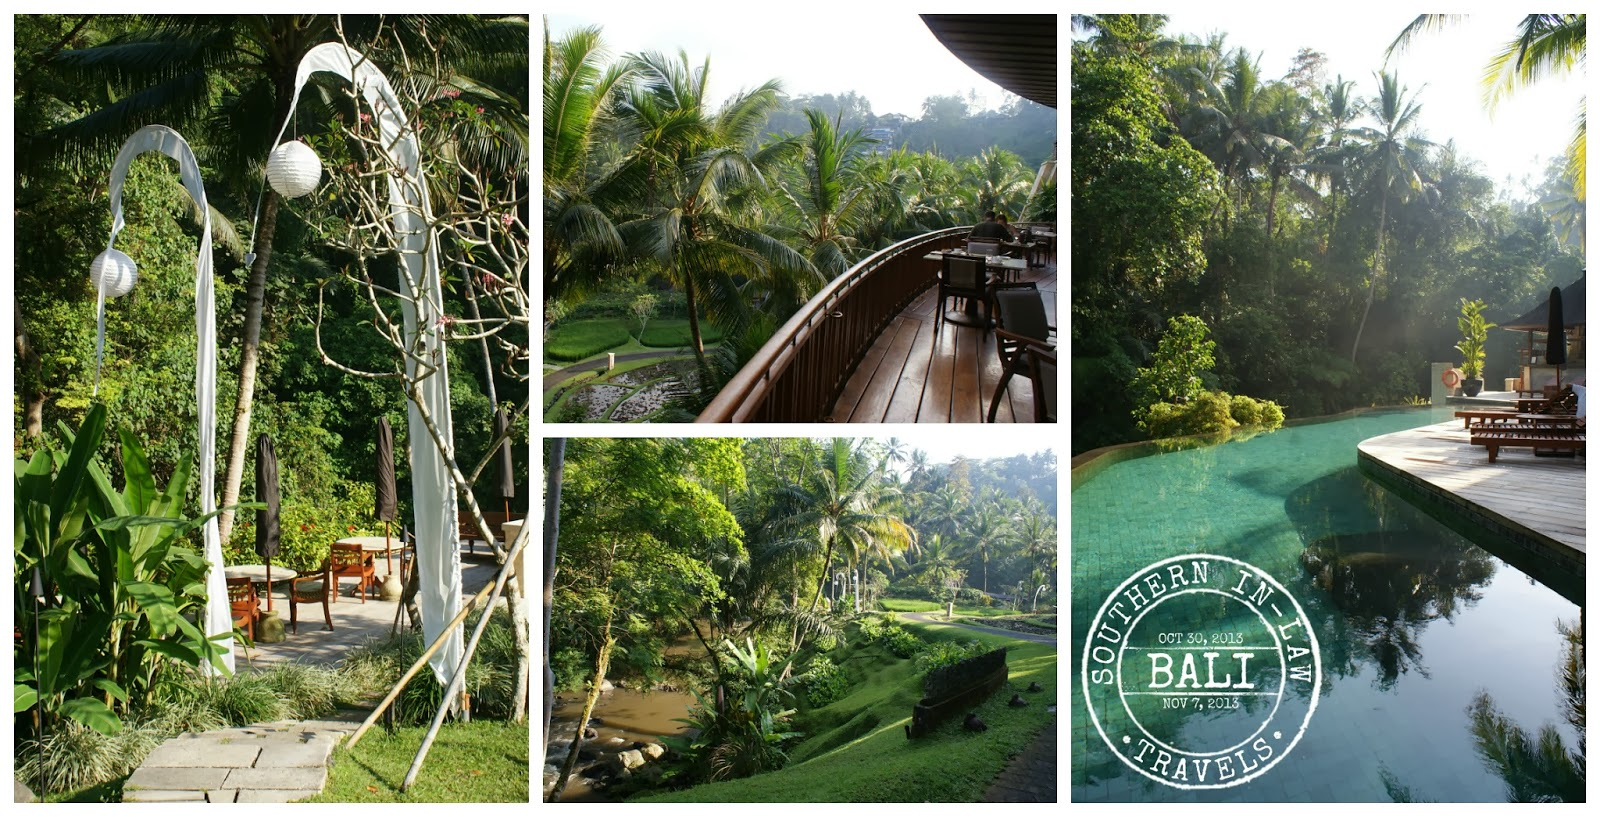 Four Seasons Sayan Bali Review - Gluten Free in Bali